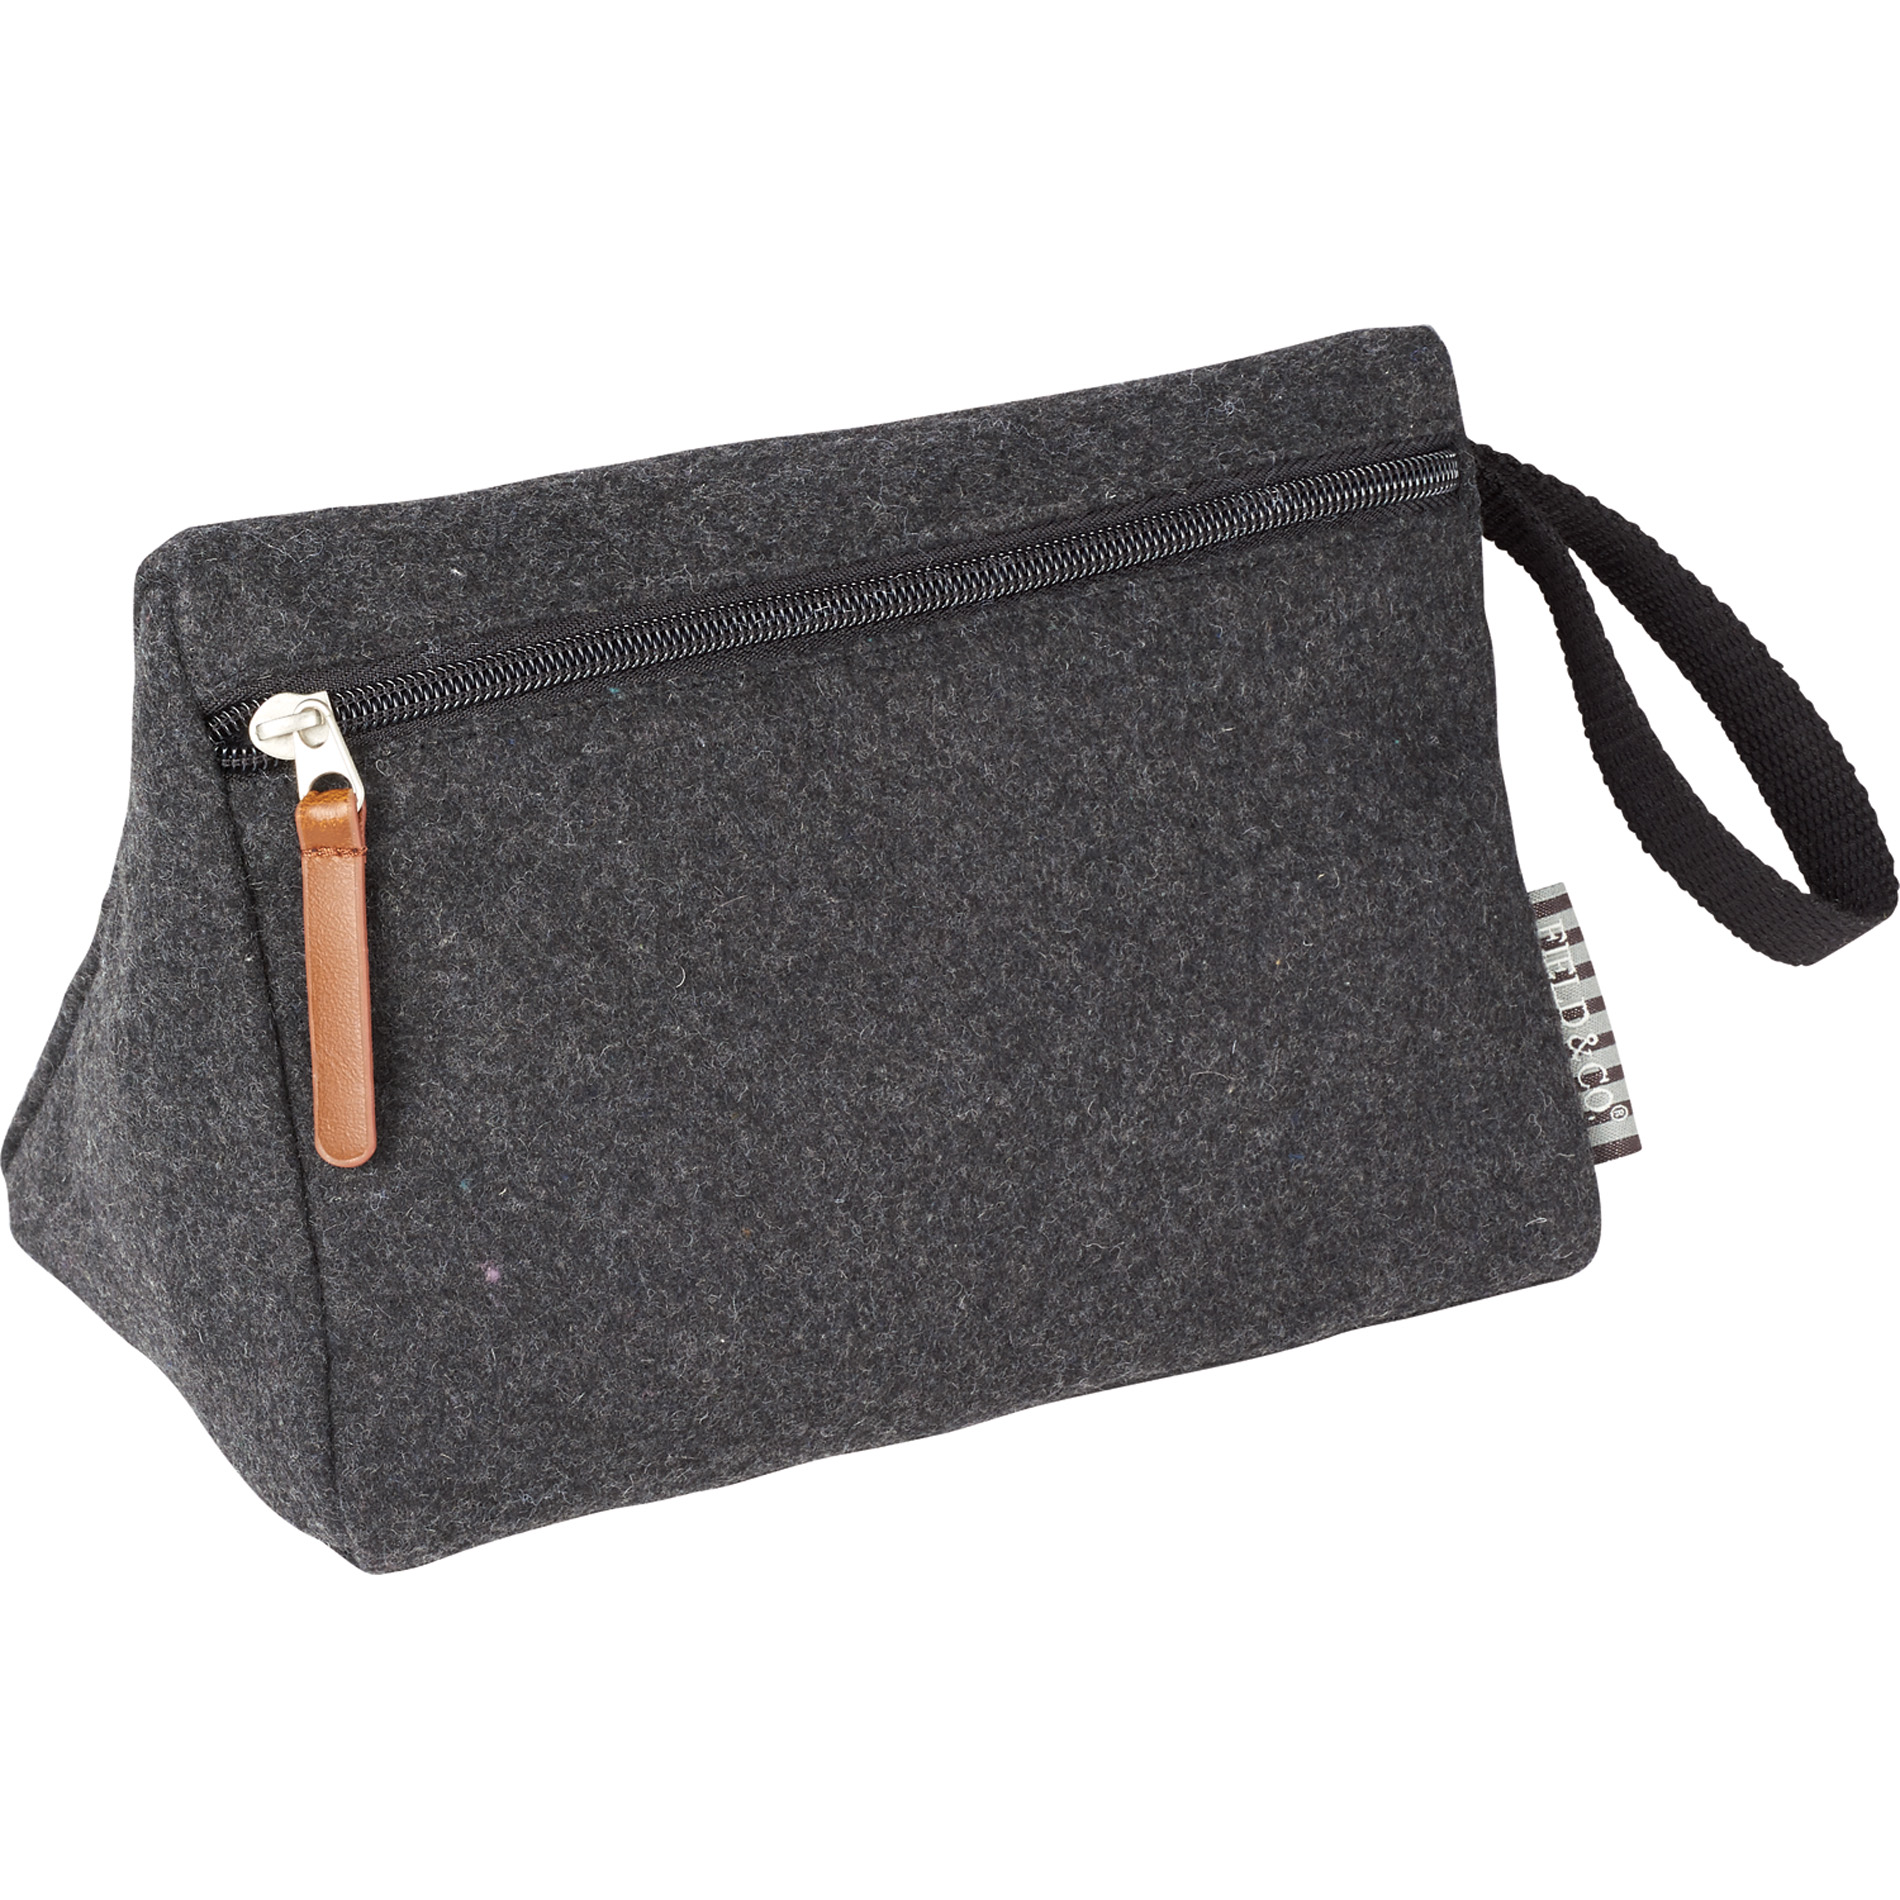 Field & Co.® 7950-74 - Campster Travel Pouch